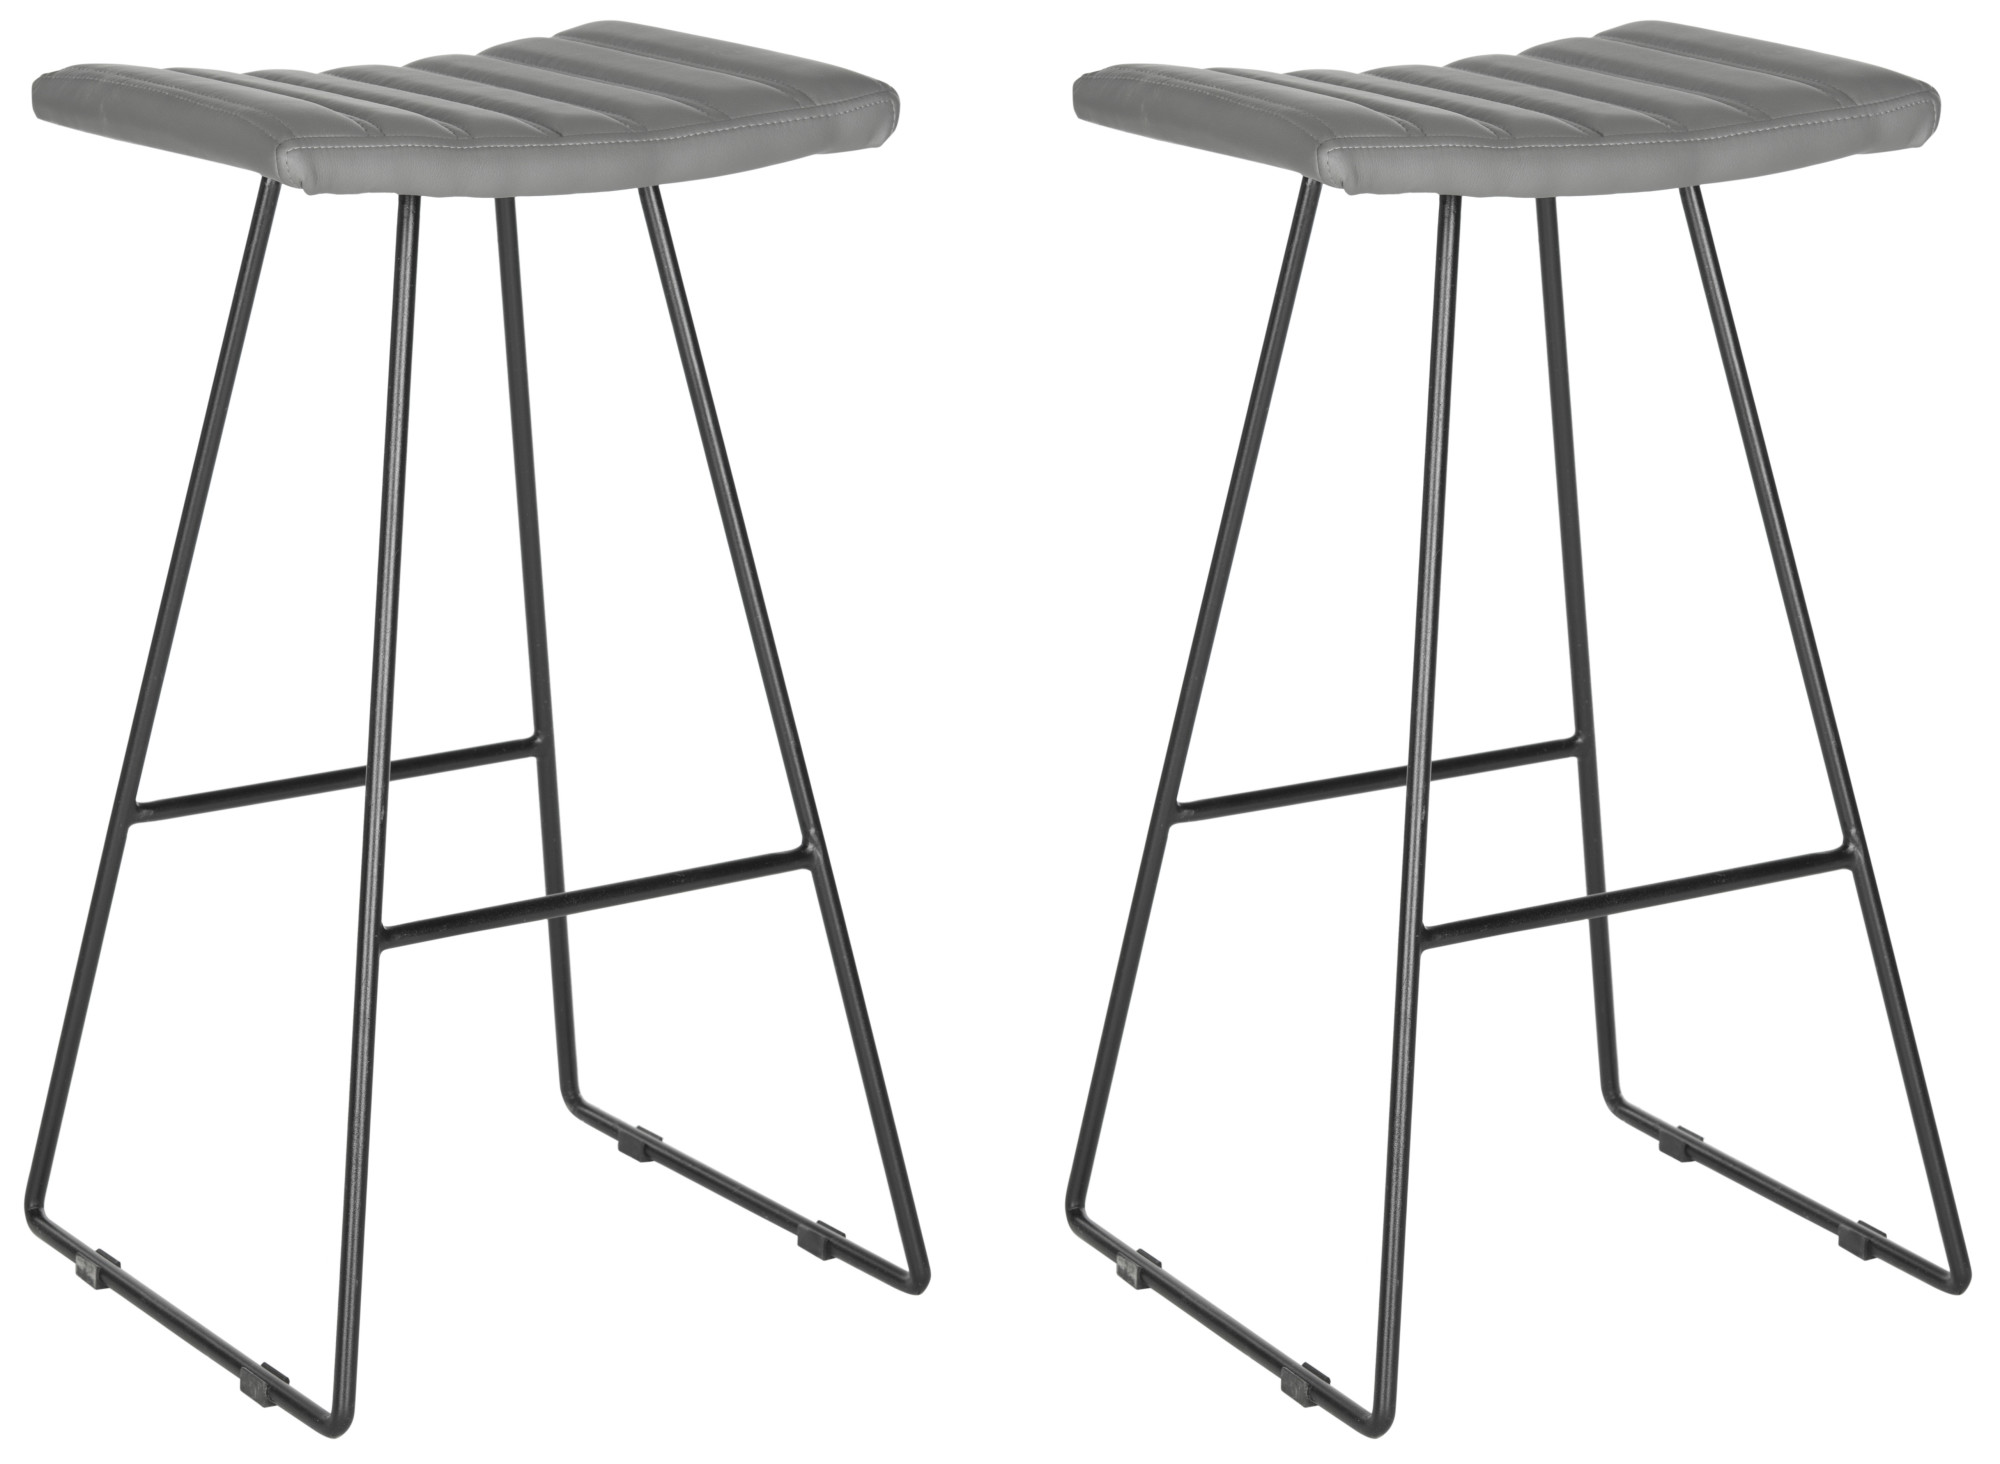 Surprising Details About Safavieh Fox2010 Set2 Akito 16 5W Plywood Bar Stools Set Of 2 Black Grey Cjindustries Chair Design For Home Cjindustriesco